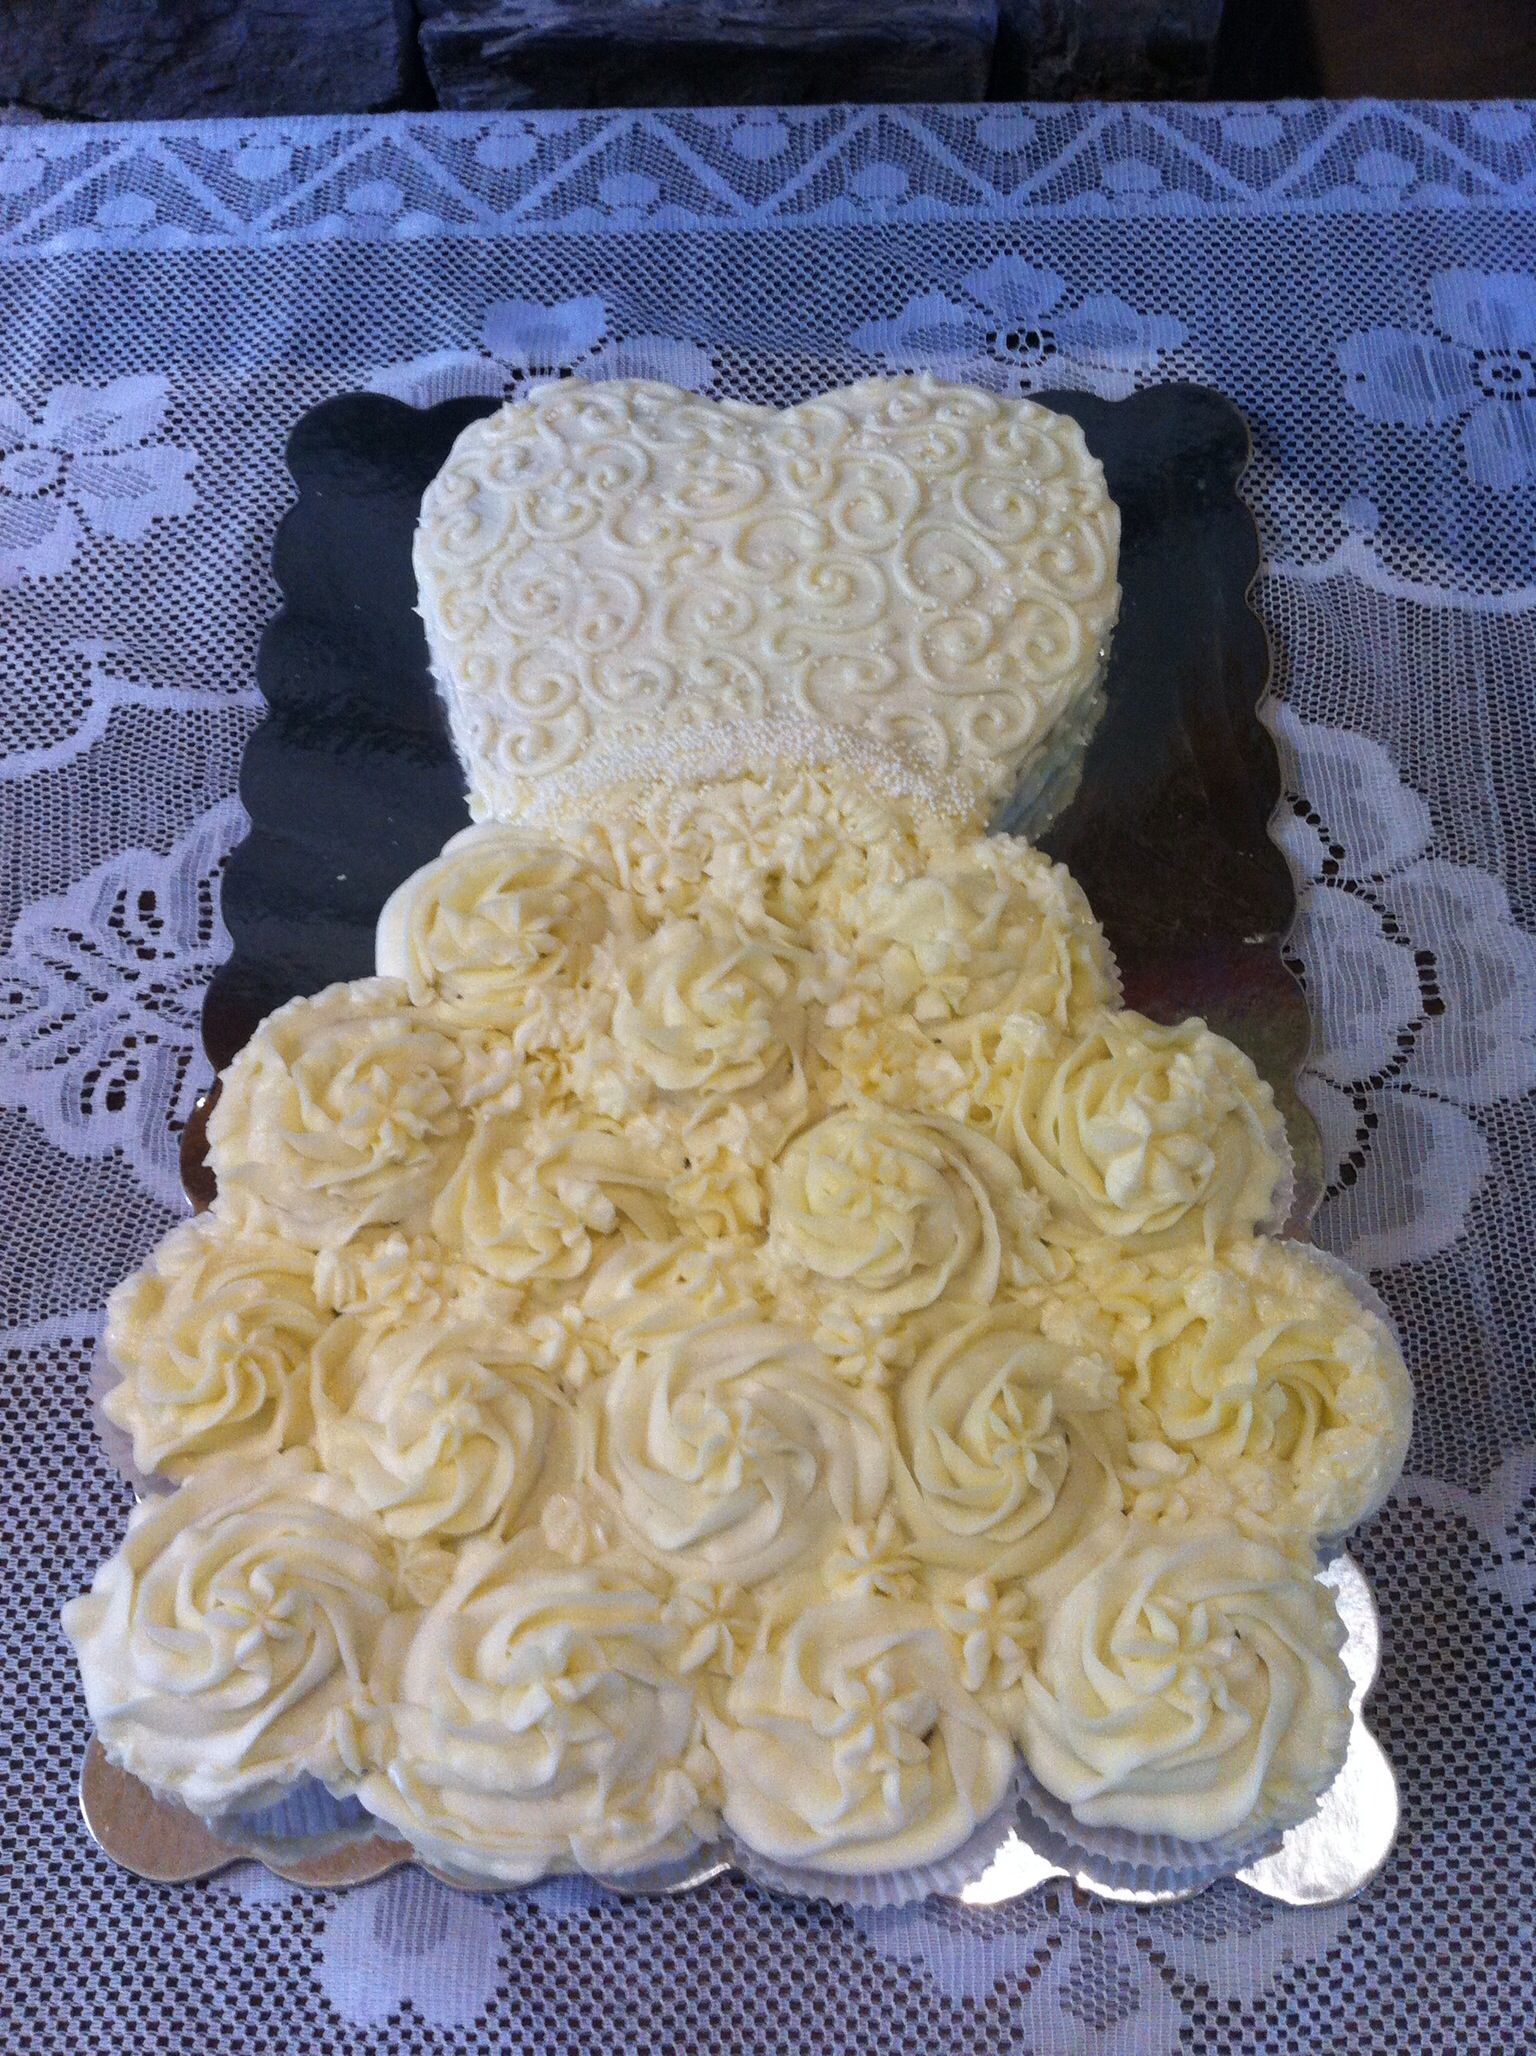 Cupcake Pull Apart Wedding Dress Cake Slightly Different Than The Usual One Seen As The Bodice Cupcake Cake Designs Wedding Dress Cupcakes Wedding Shower Cakes